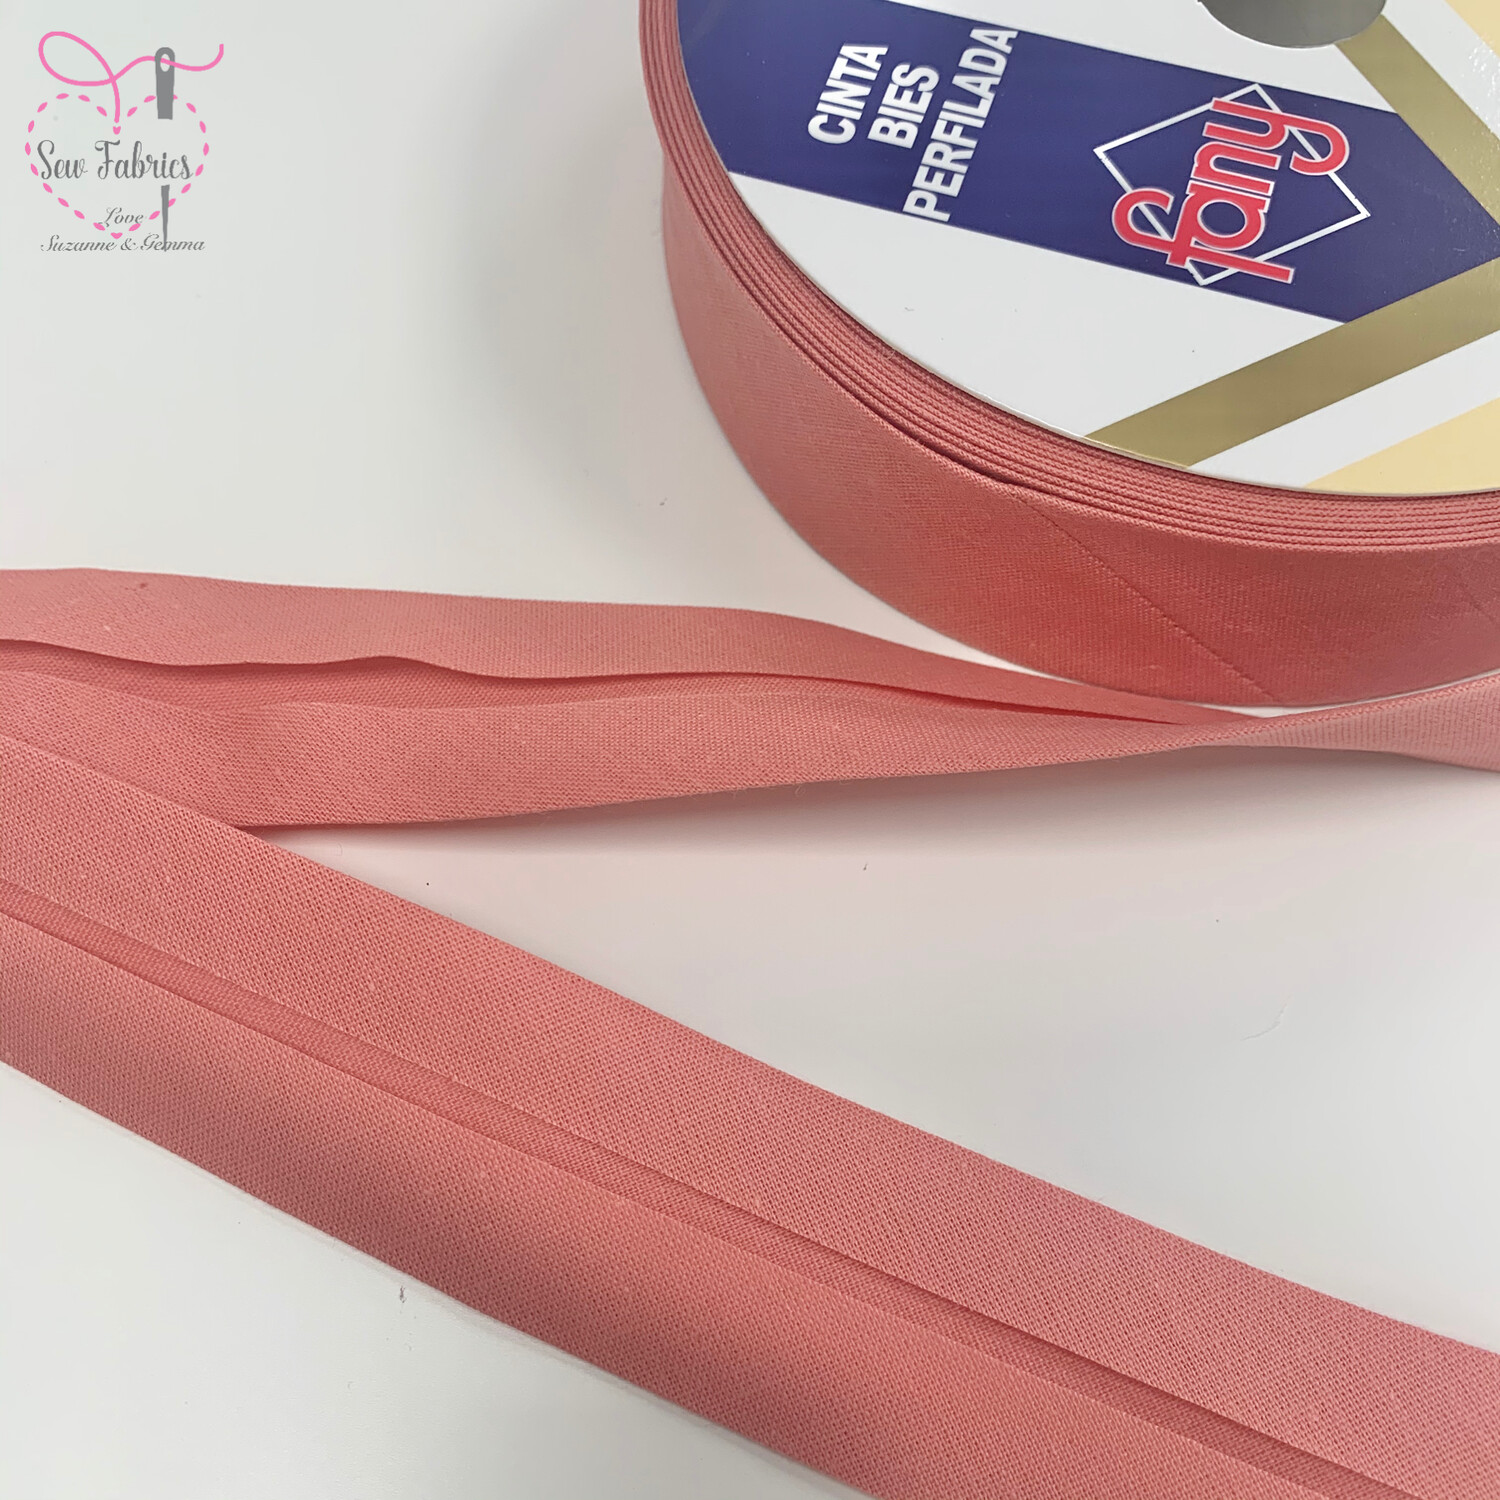 25 metres reel of Carnation Pink Plain Polycotton Bias Binding 30mm